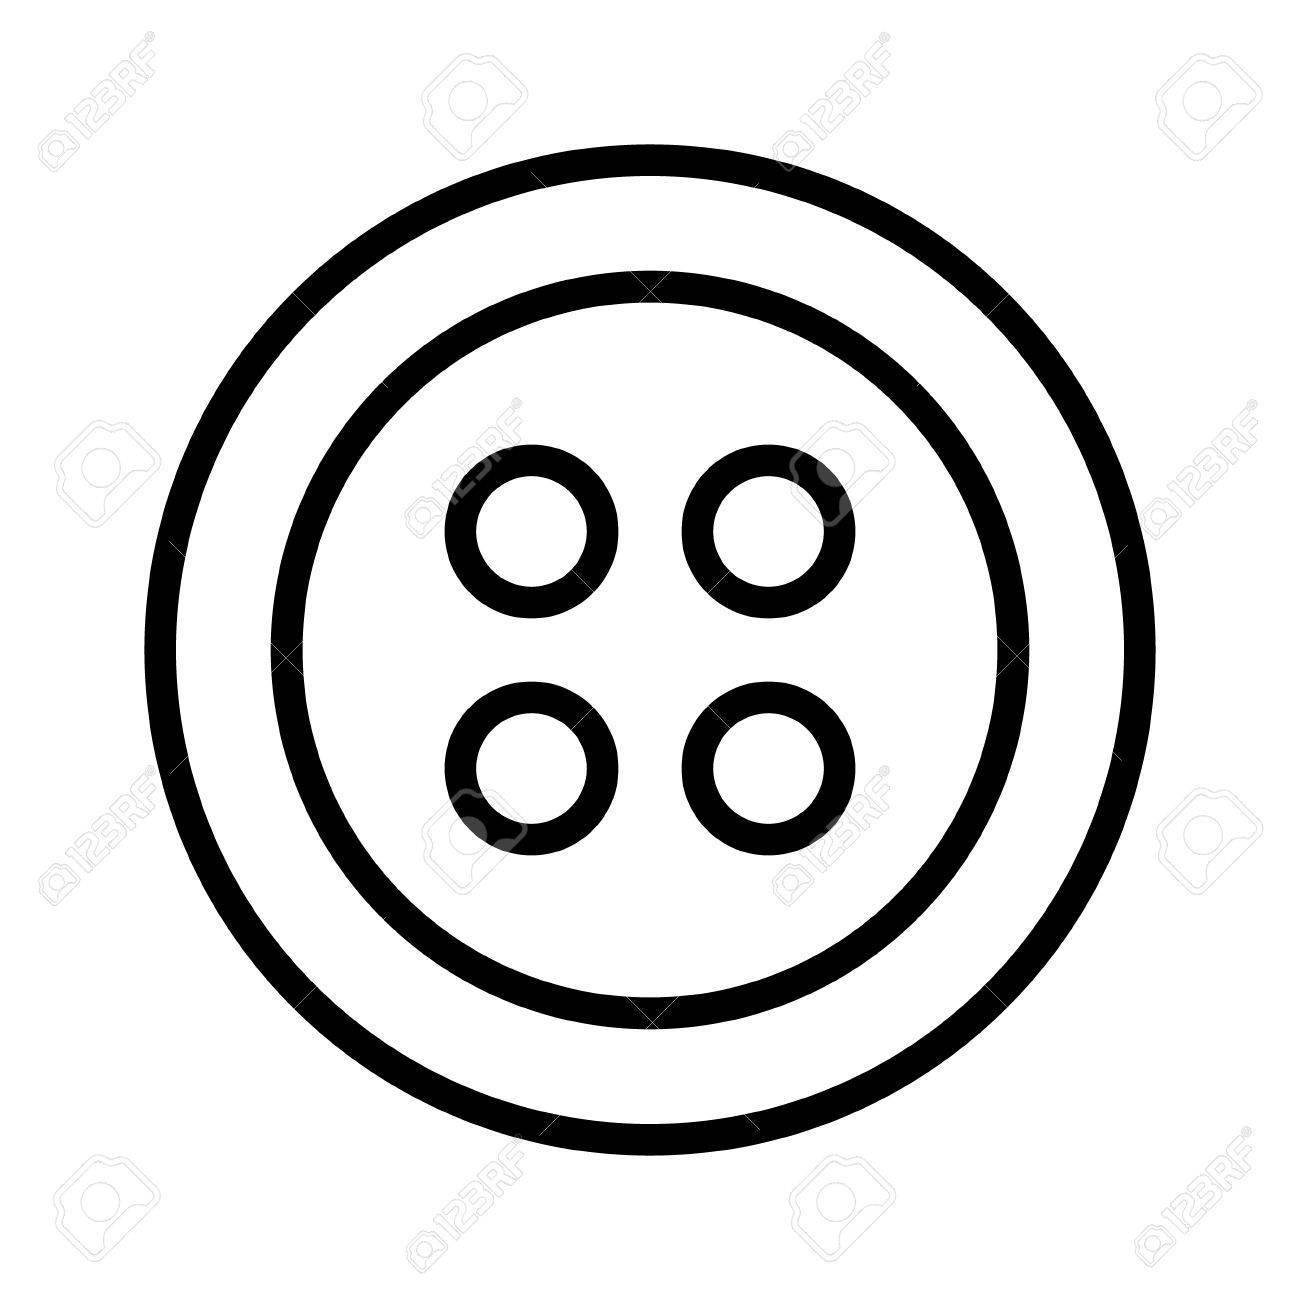 Library Of Black Buttons Image Transparent Stock Files